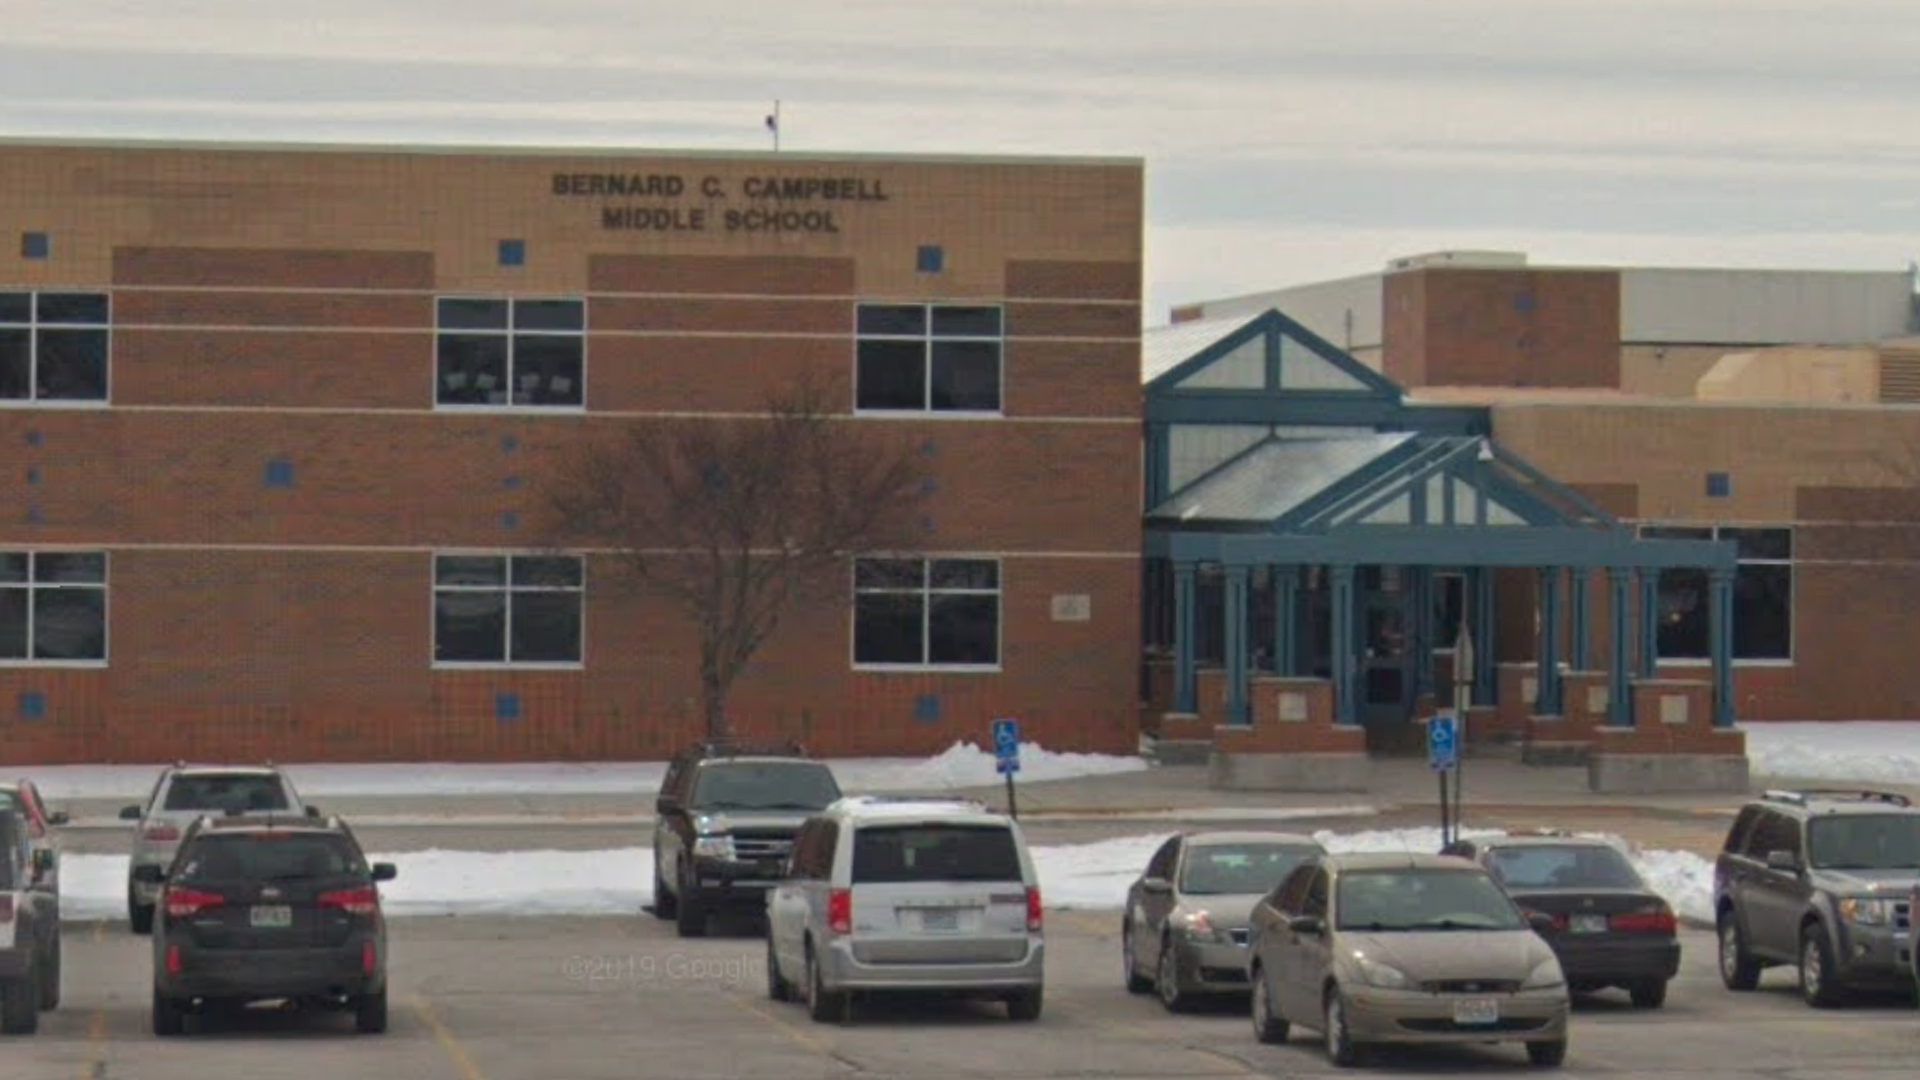 Bernard Campbell Middle School in Kansas City, Missouri, is seen in a Google Maps image.